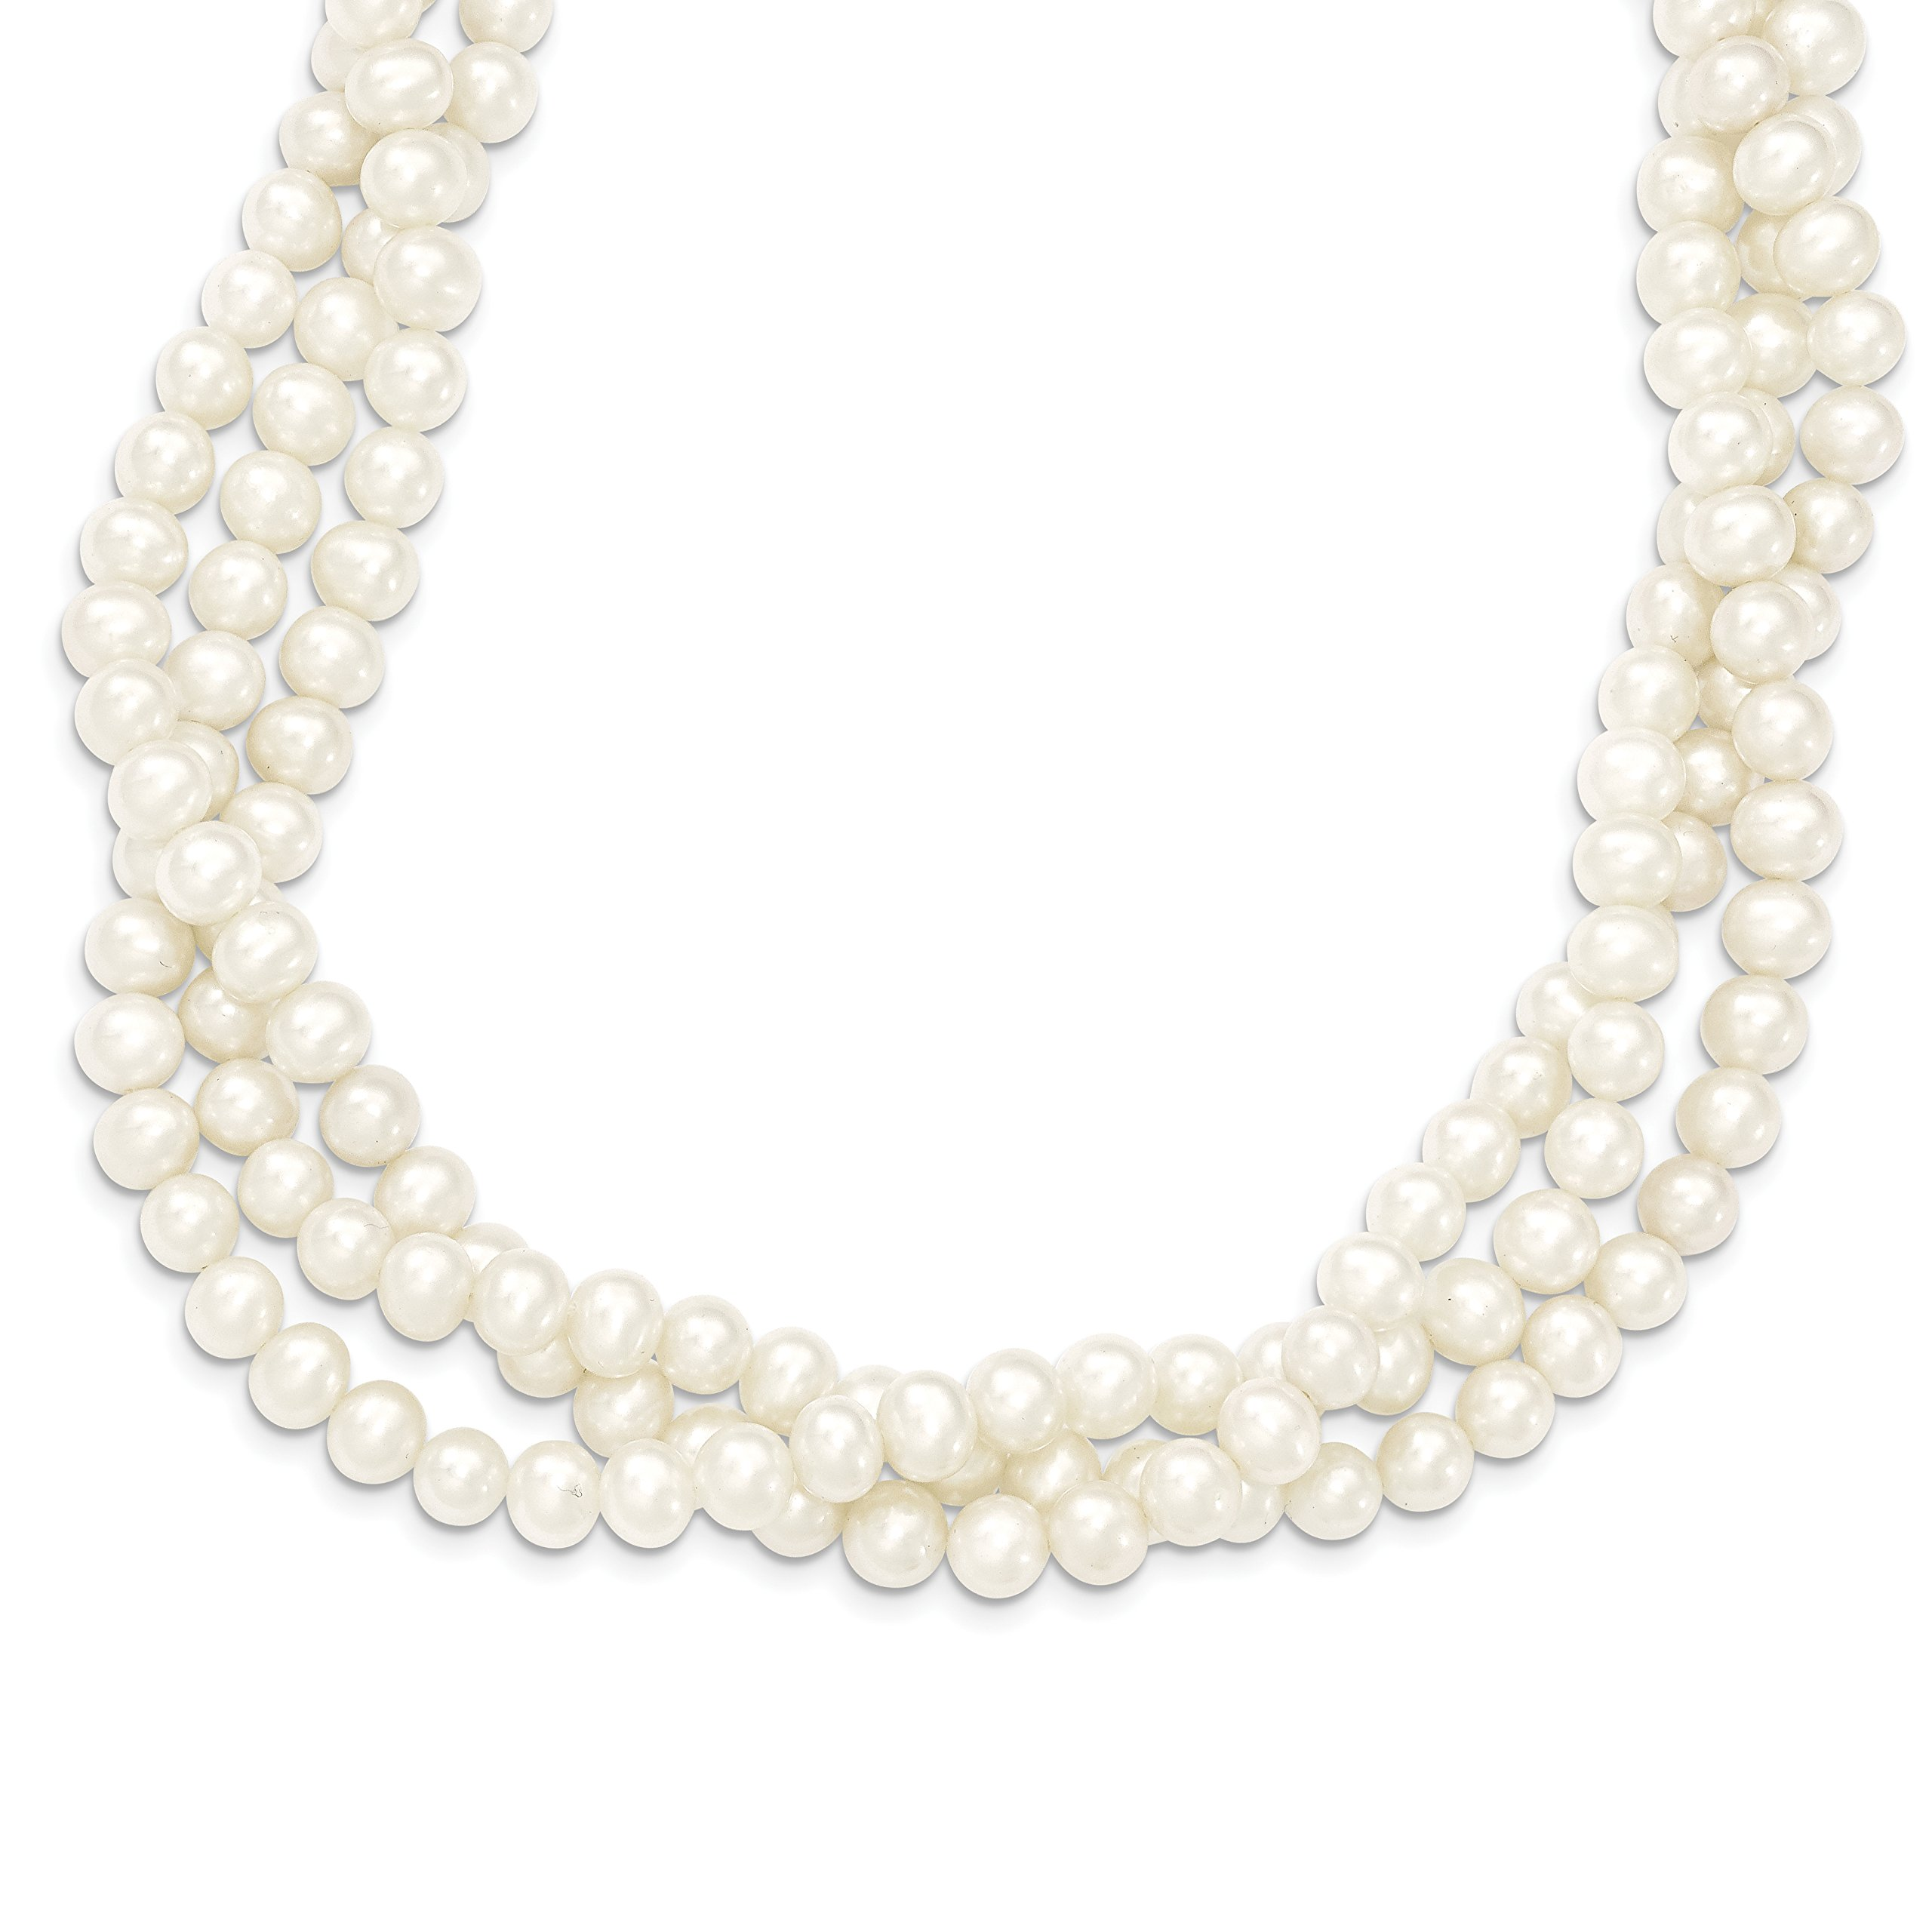 ICE CARATS 14k Yellow Gold 7mm White Freshwater Cultured 3 Strand Pearl Chain Necklace Fine Jewelry Gift For Women Heart